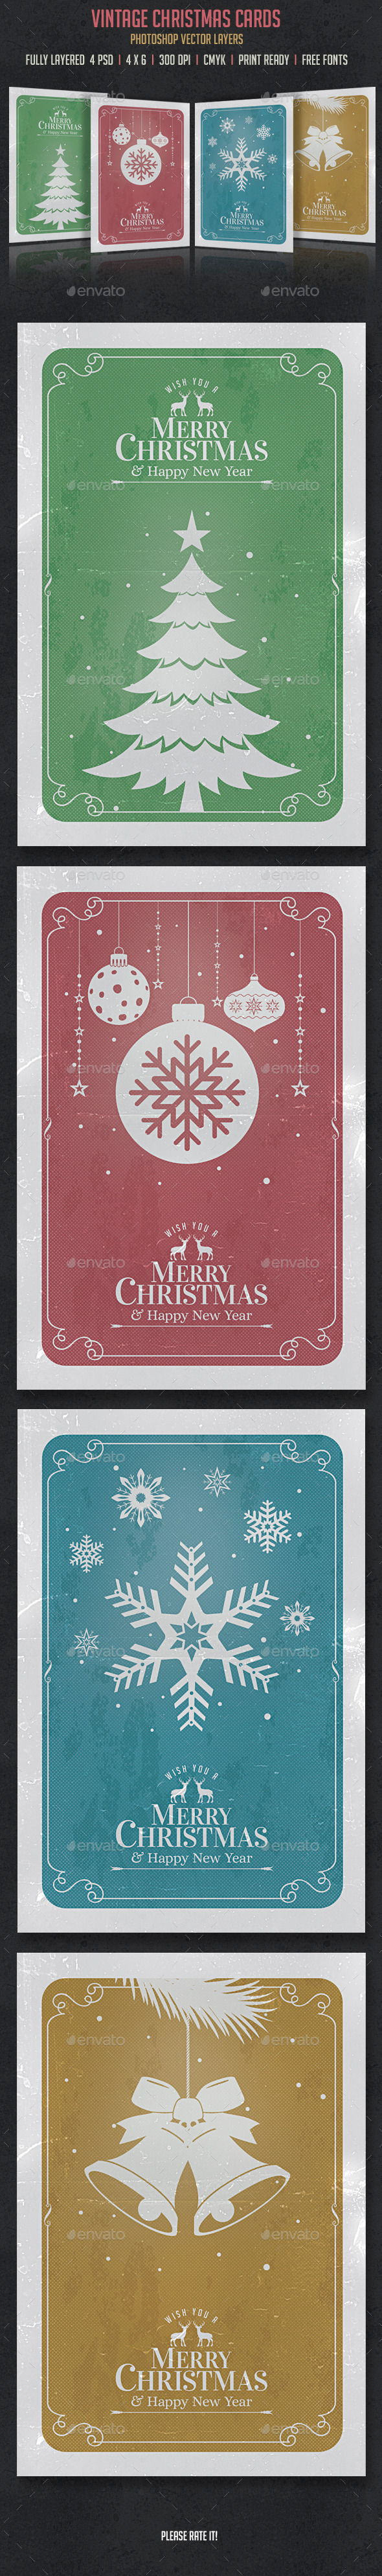 Vintage Christmas Cards/Invitation - Cards & Invites Print Templates